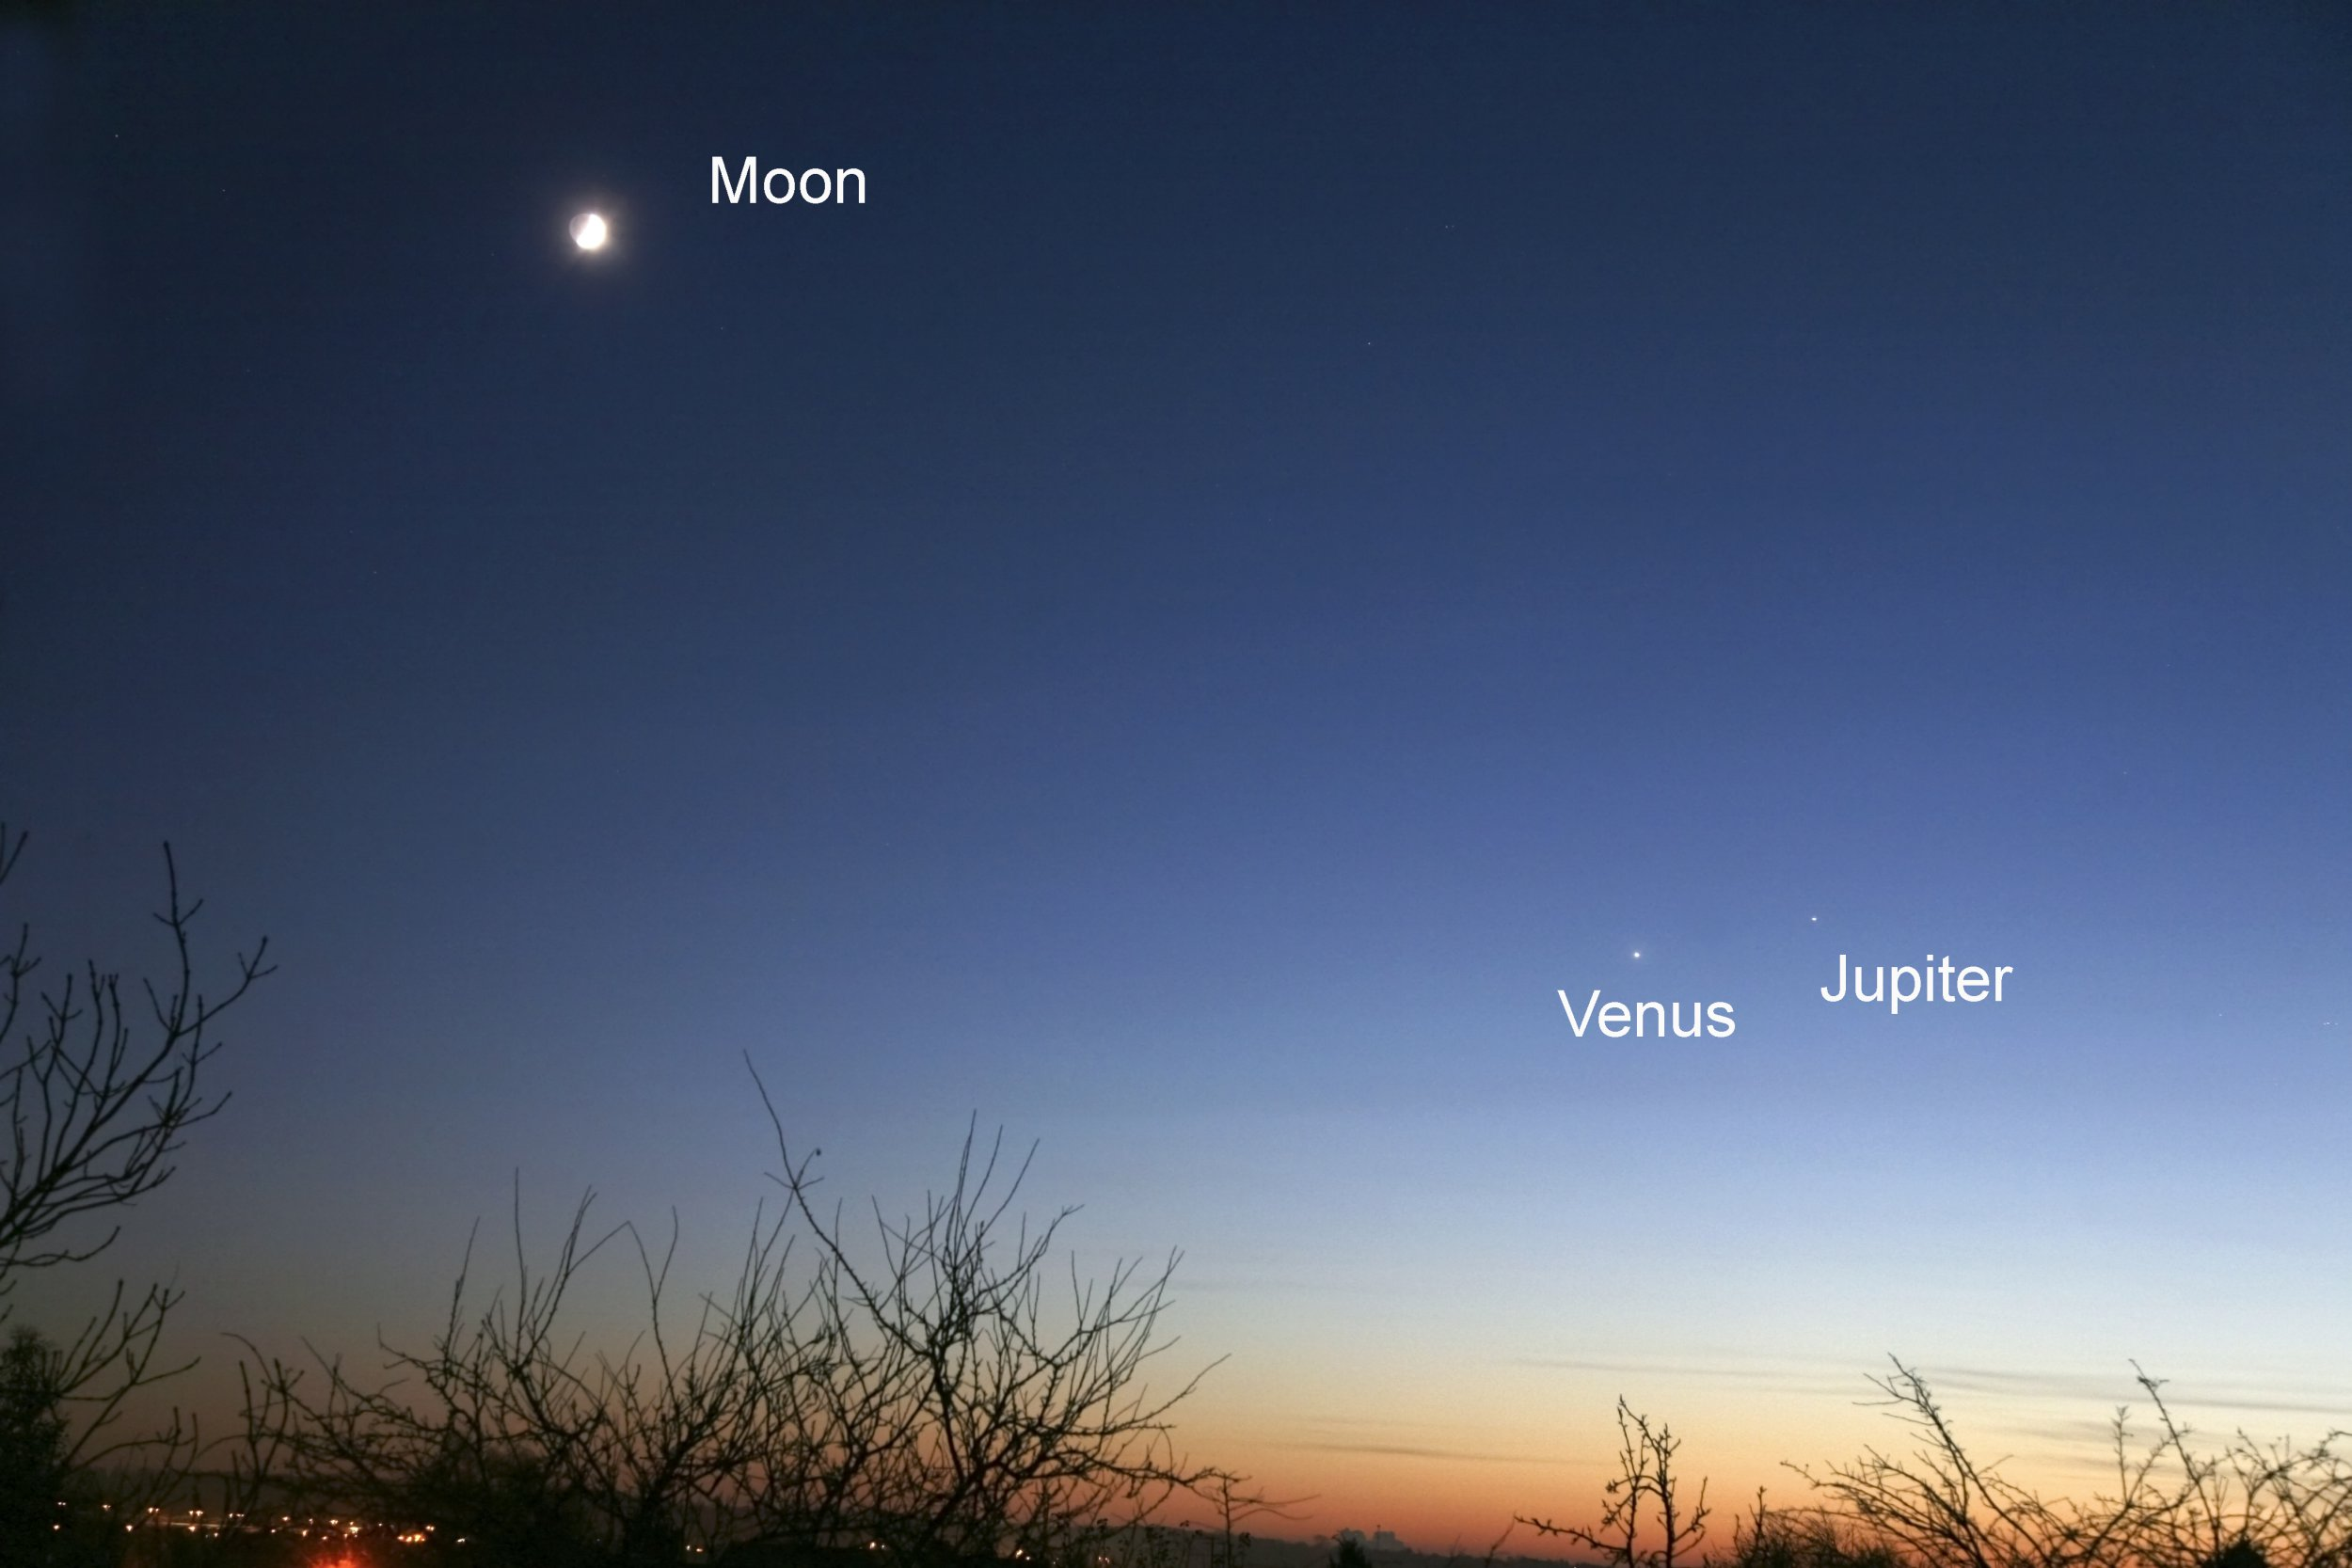 Why is Venus so bright? UNITED KINGDOM - MAY 30: Venus A crescent moon hangs in the sky above Venus (on the left) and Jupiter in the evening sky on 3 December, 2008. (Photo by Jamie Cooper/SSPL/Getty Images)